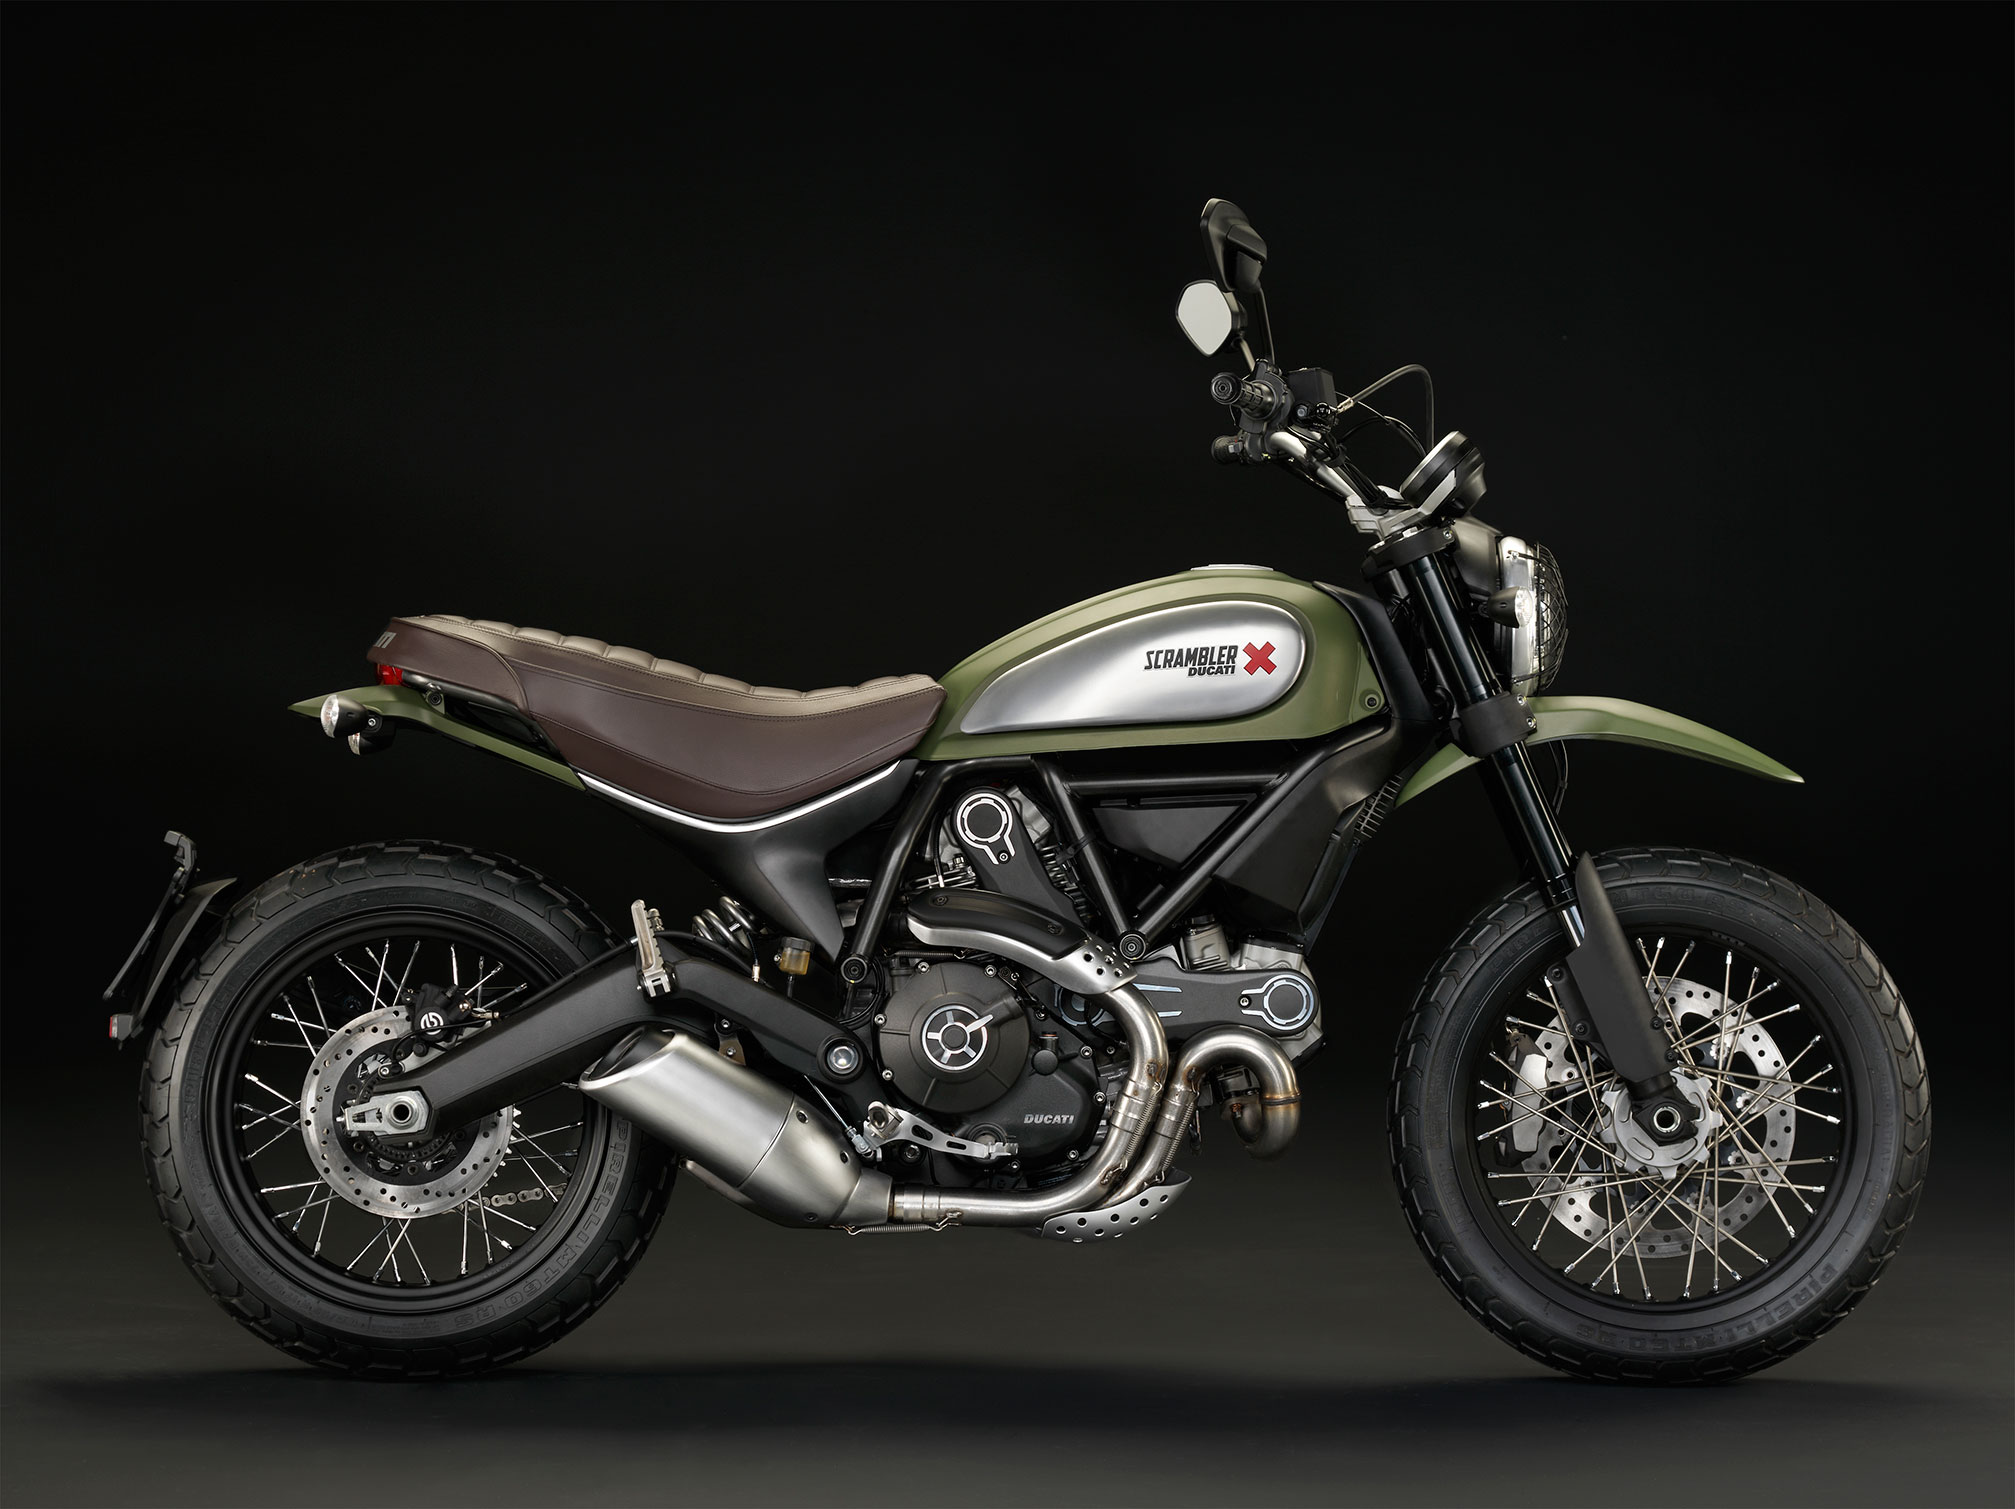 2015 ducati scrambler urban enduro review